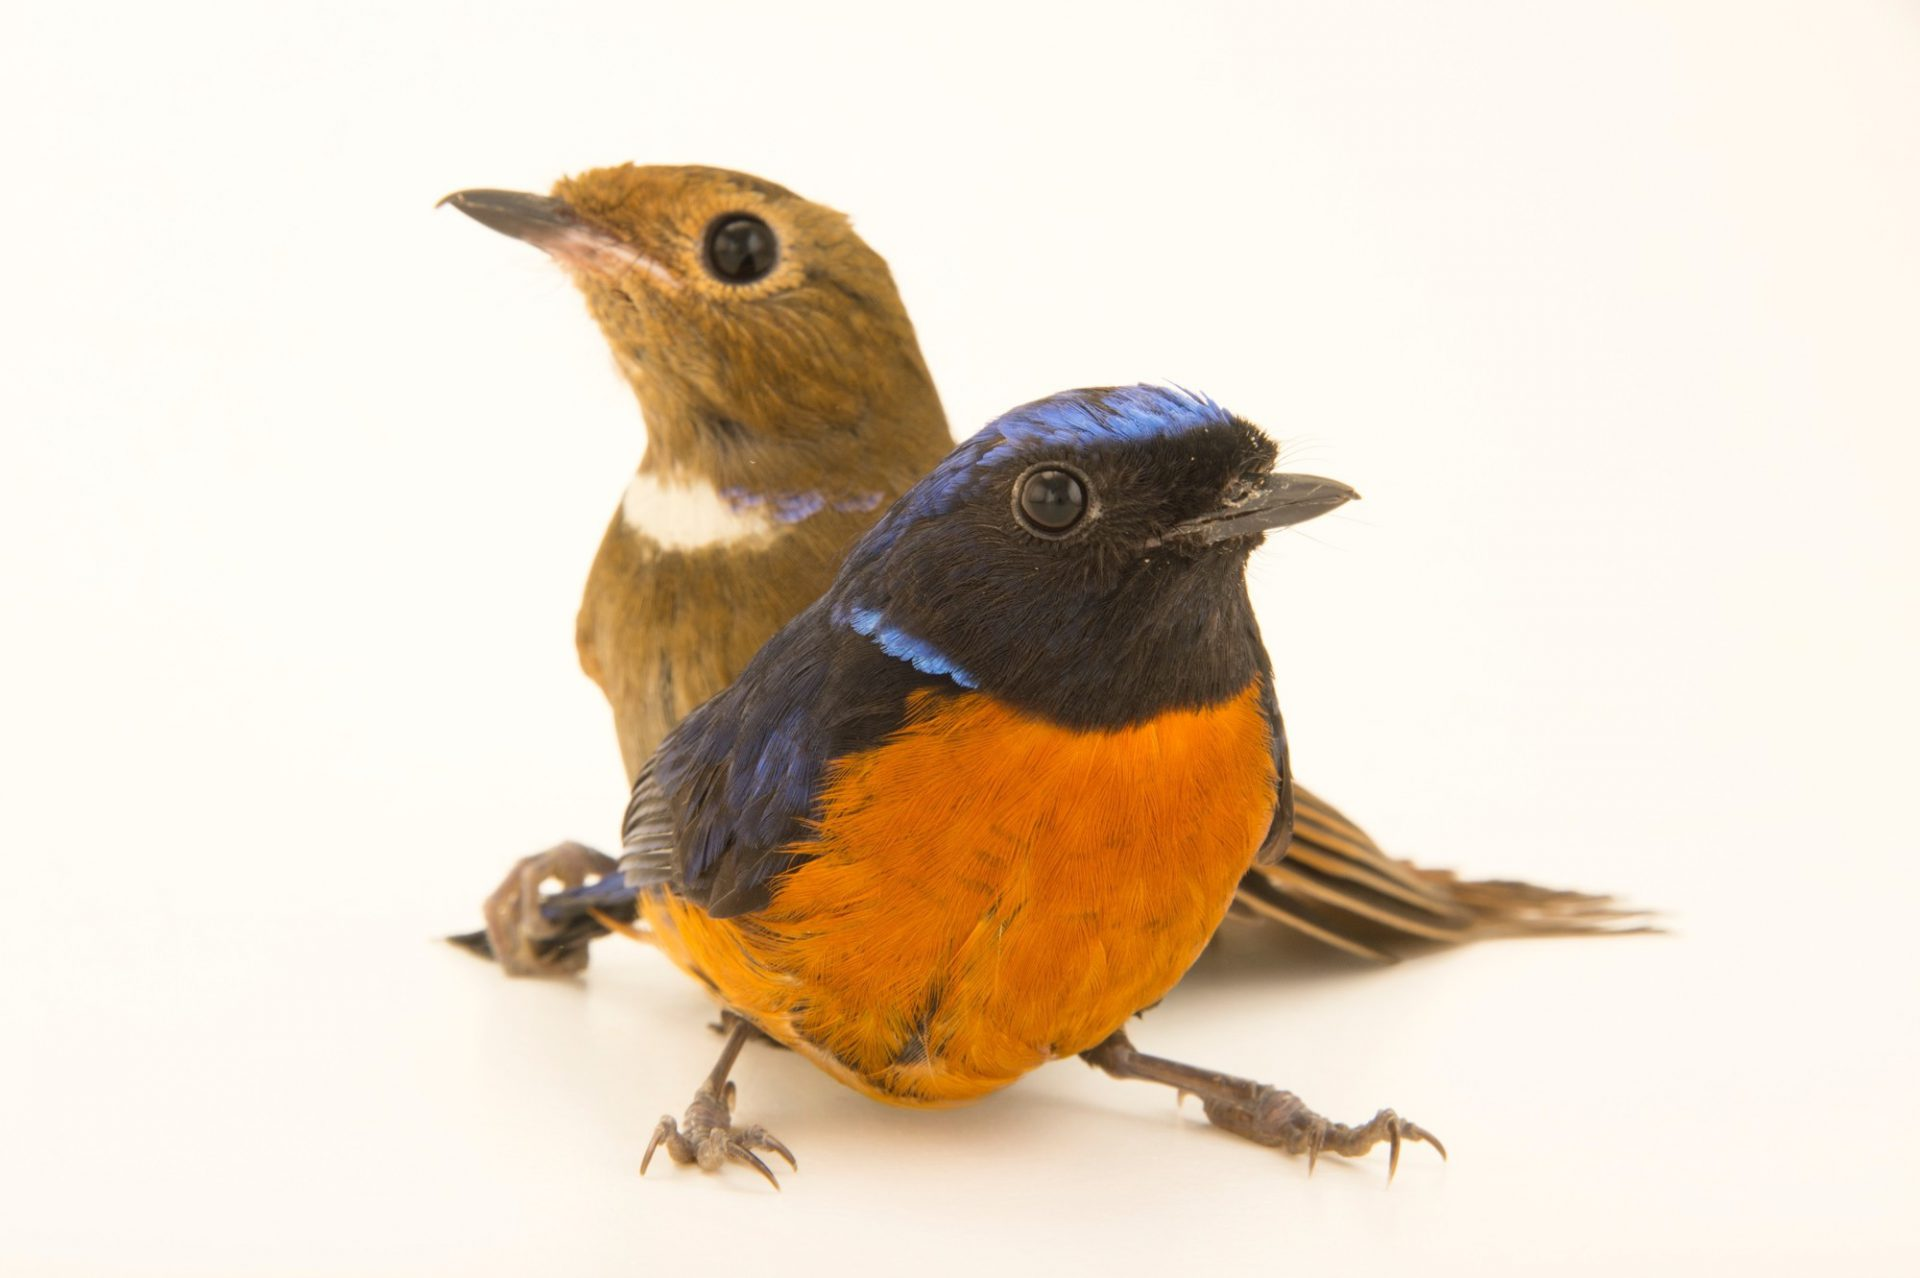 Photo: Two rufous-bellied niltava (Niltava sundara) from a private collection in Choussy, France.